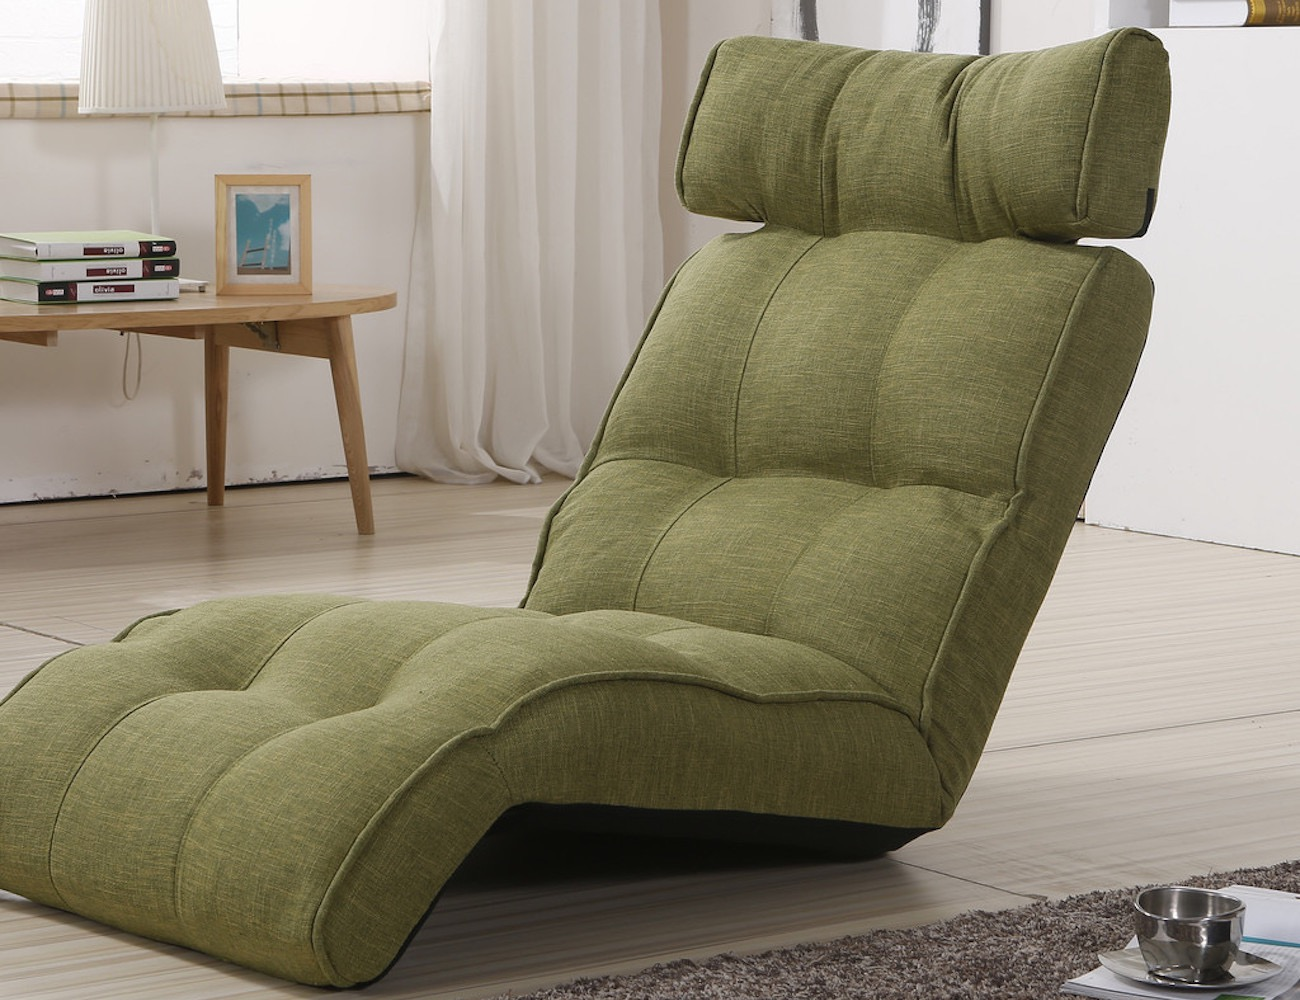 Deluxe+Sofa+Chair+By+Cozy+Kino